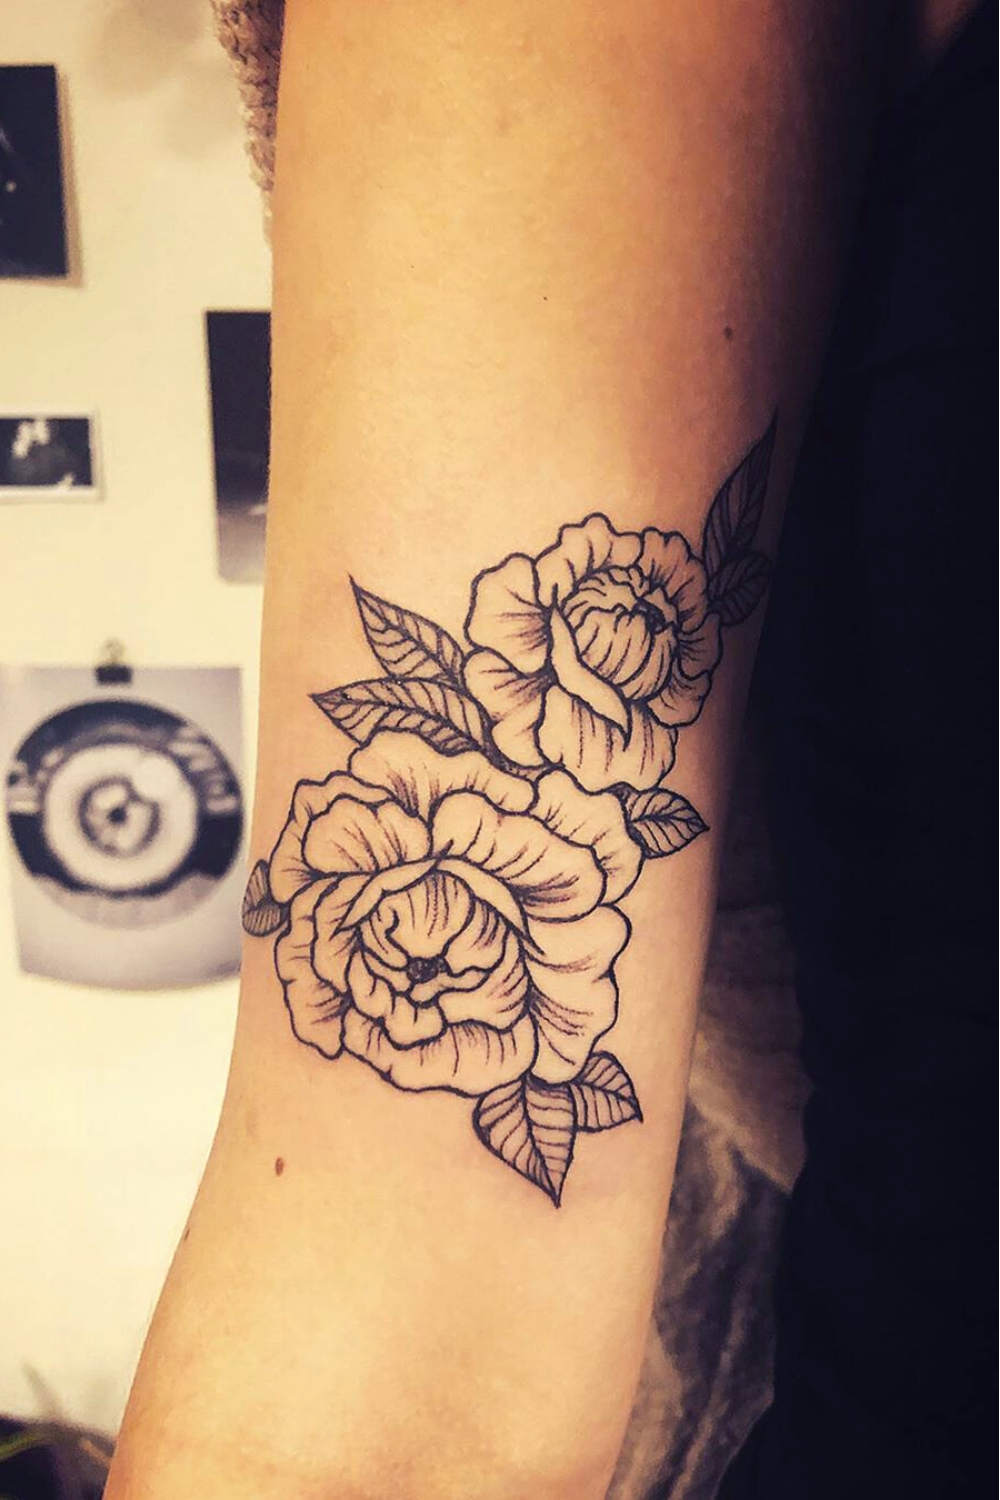 Best Women Sleeve Tattoos Types & Meaning - Jessica Pins